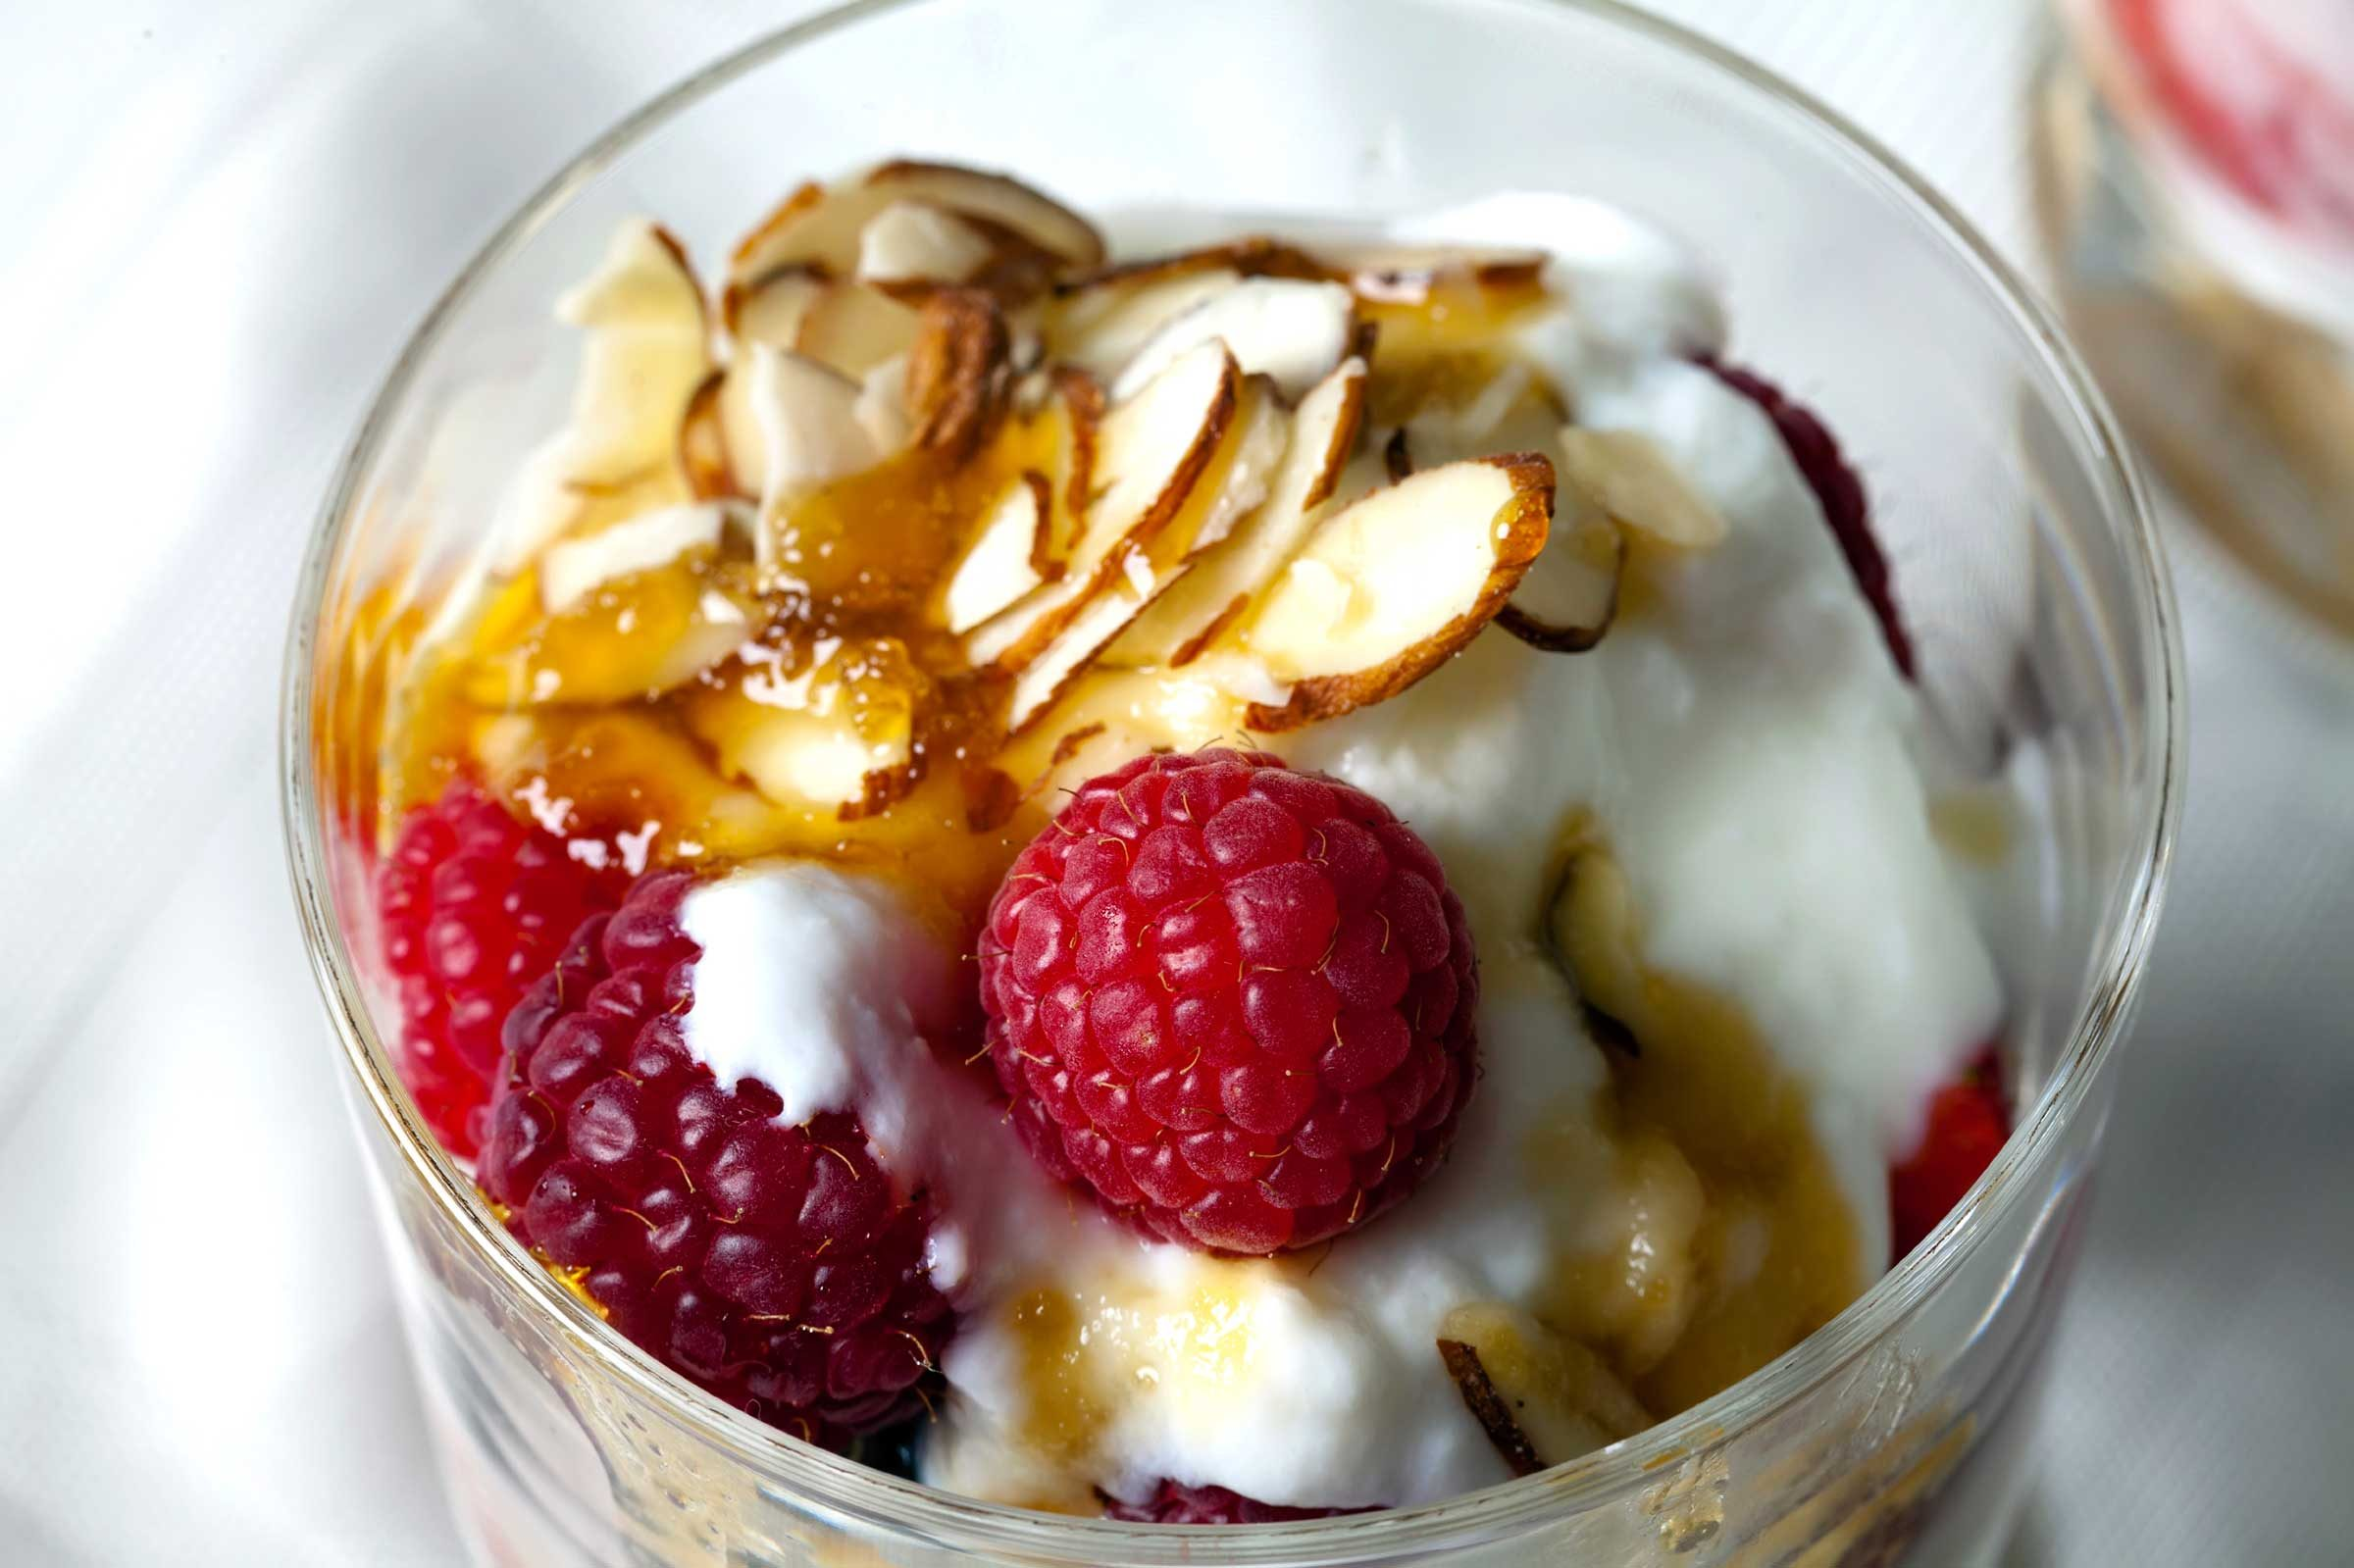 Food ideas for healthy eating - Steal These Healthy Breakfast Ideas